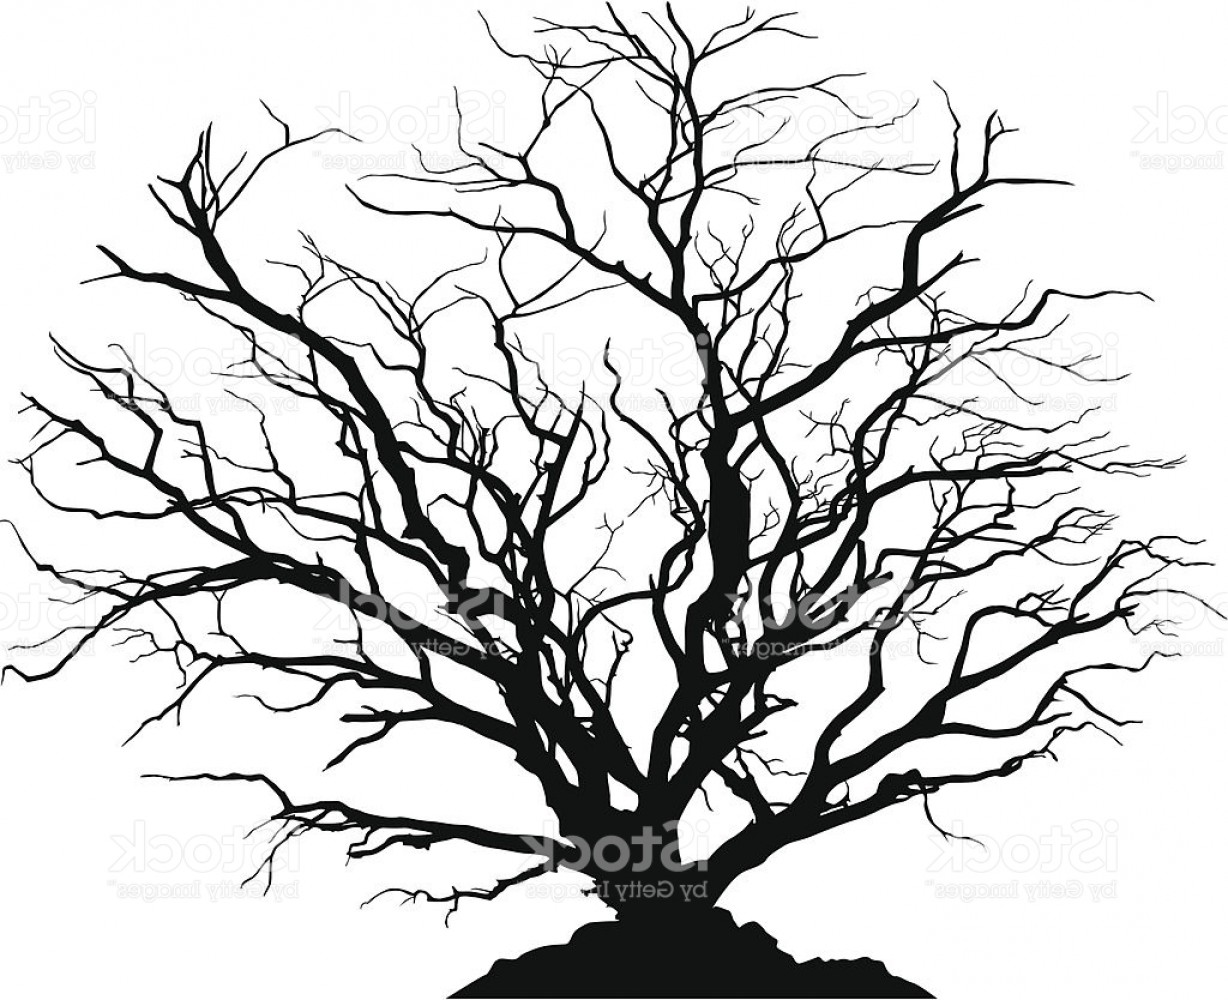 Tree Silhouette Vector Clip Art: Detailed Silhouette Of A Round Deciduous Tree With No Leaves Gm